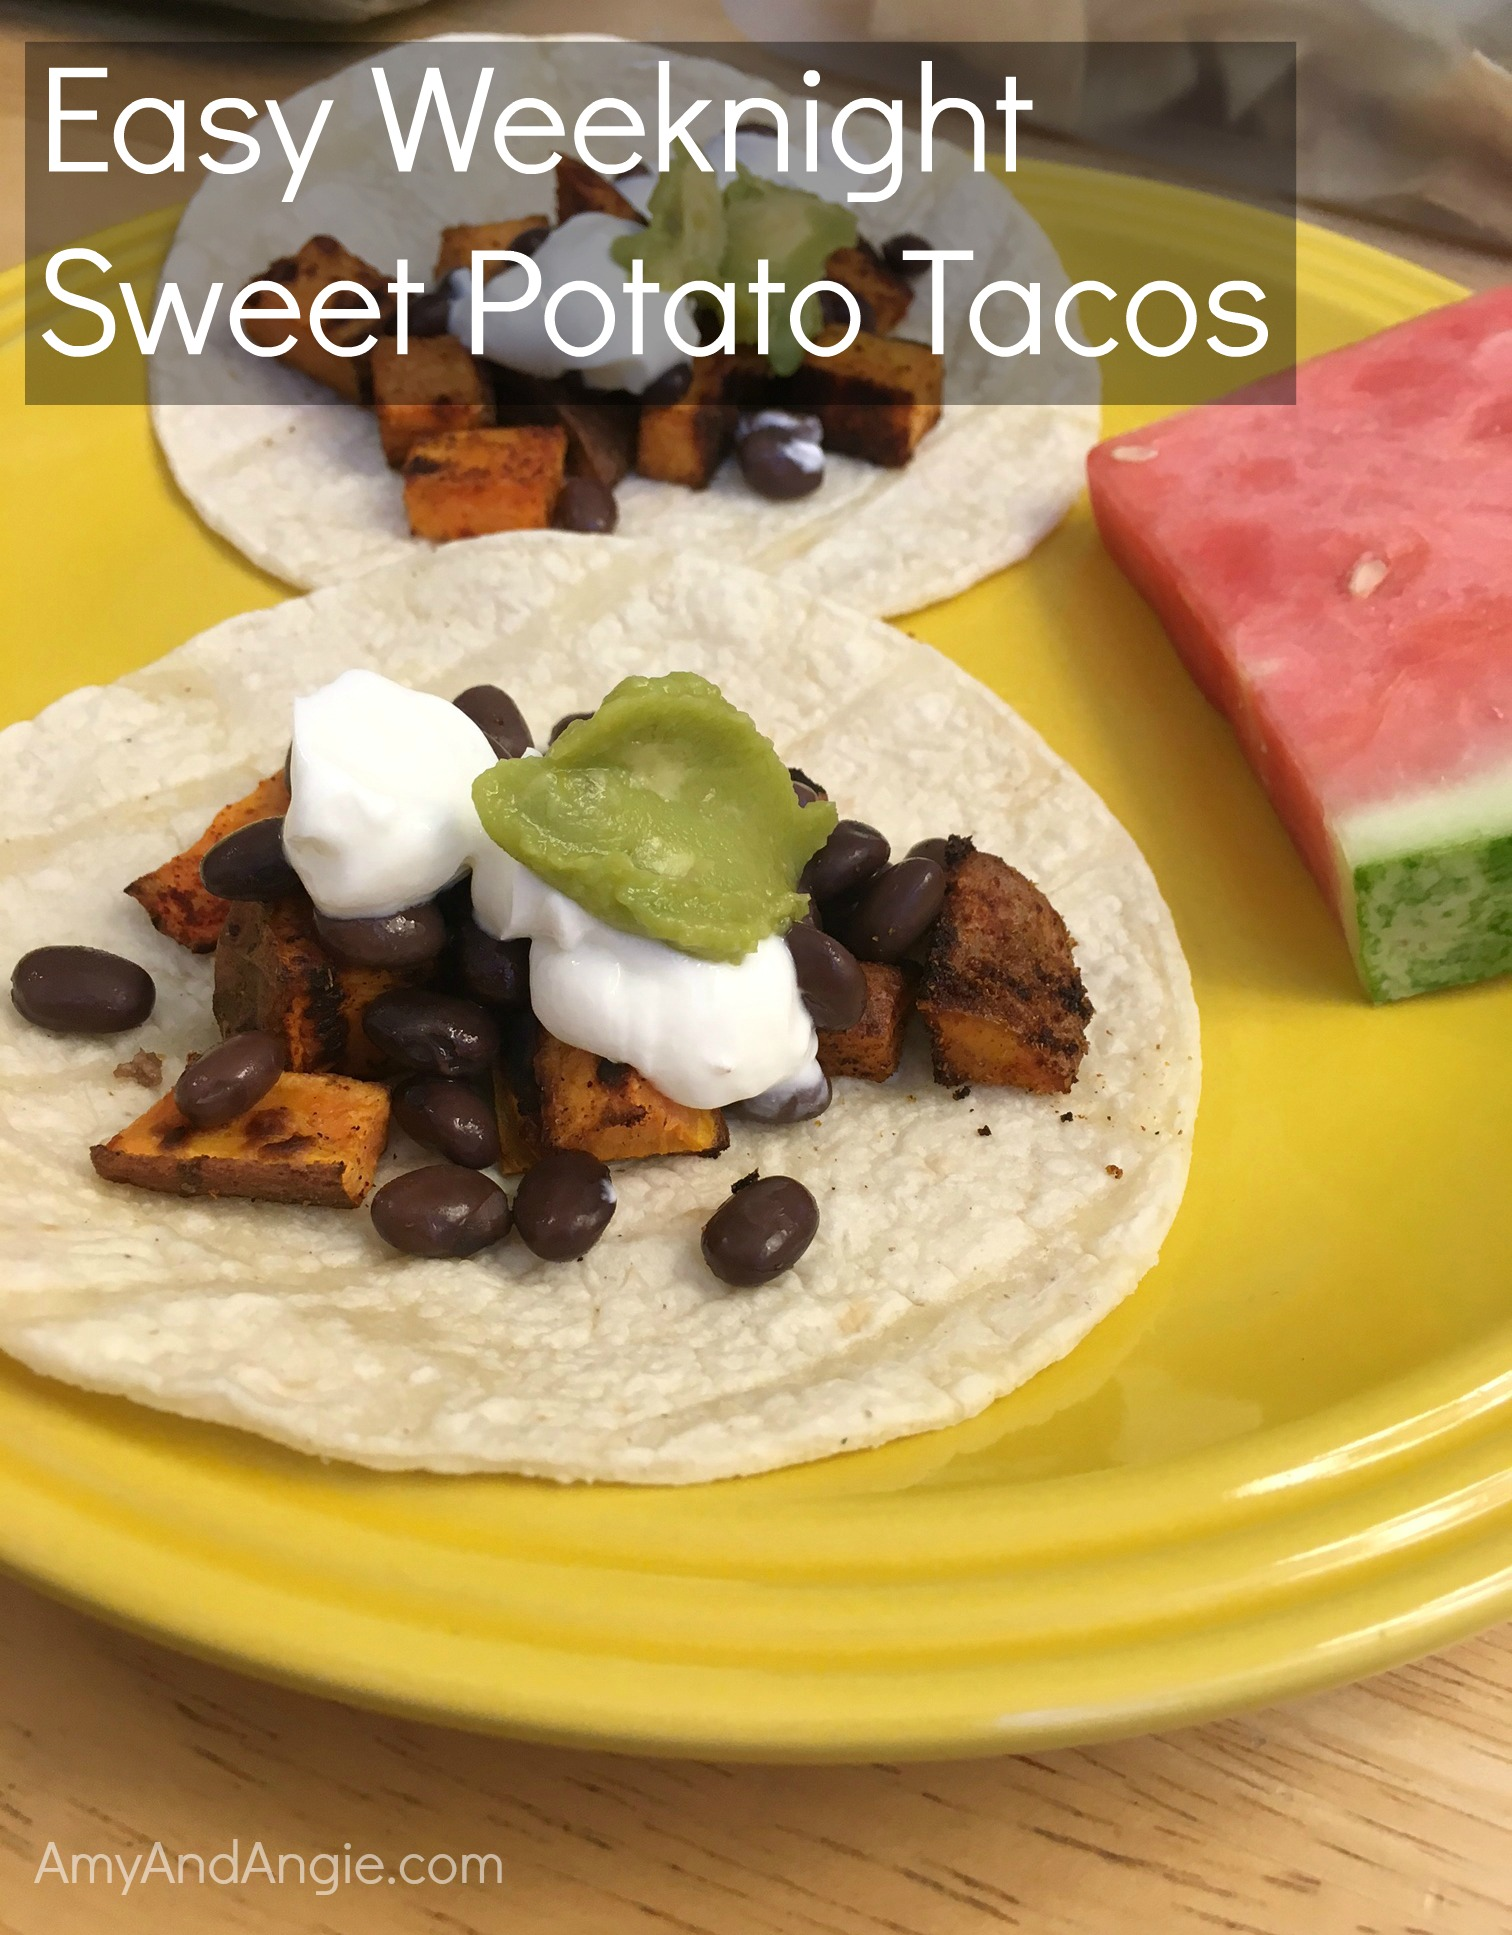 amy-and-angie-sweet-potato-tacos-9